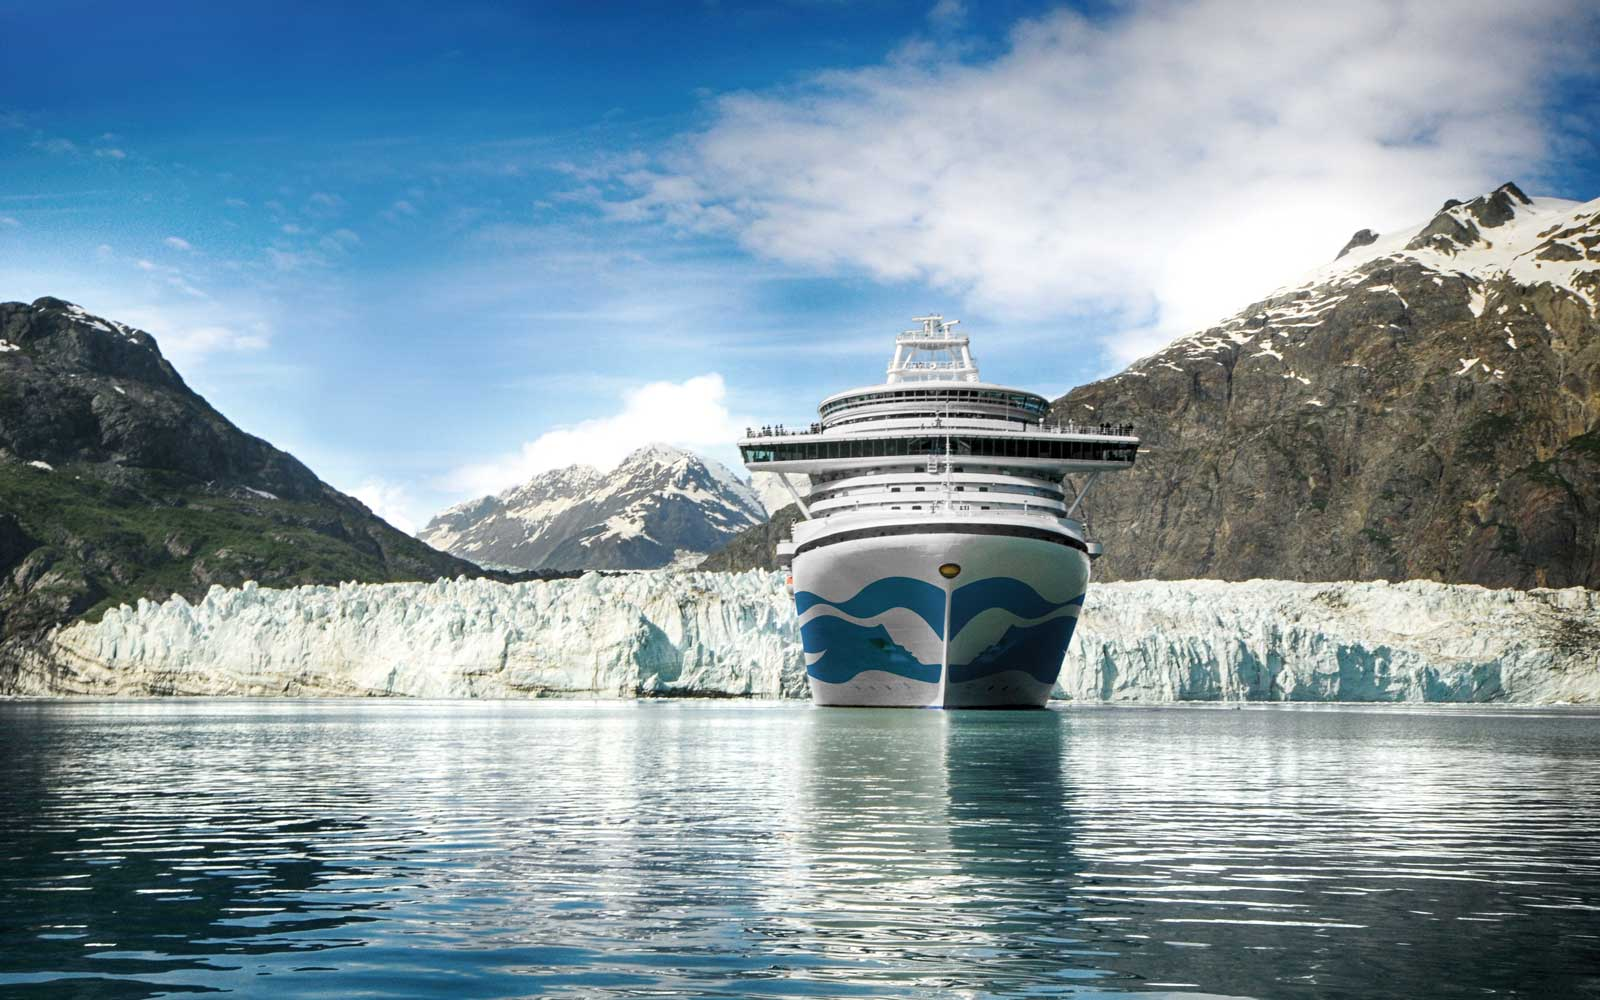 Princess Cruise in Alaska